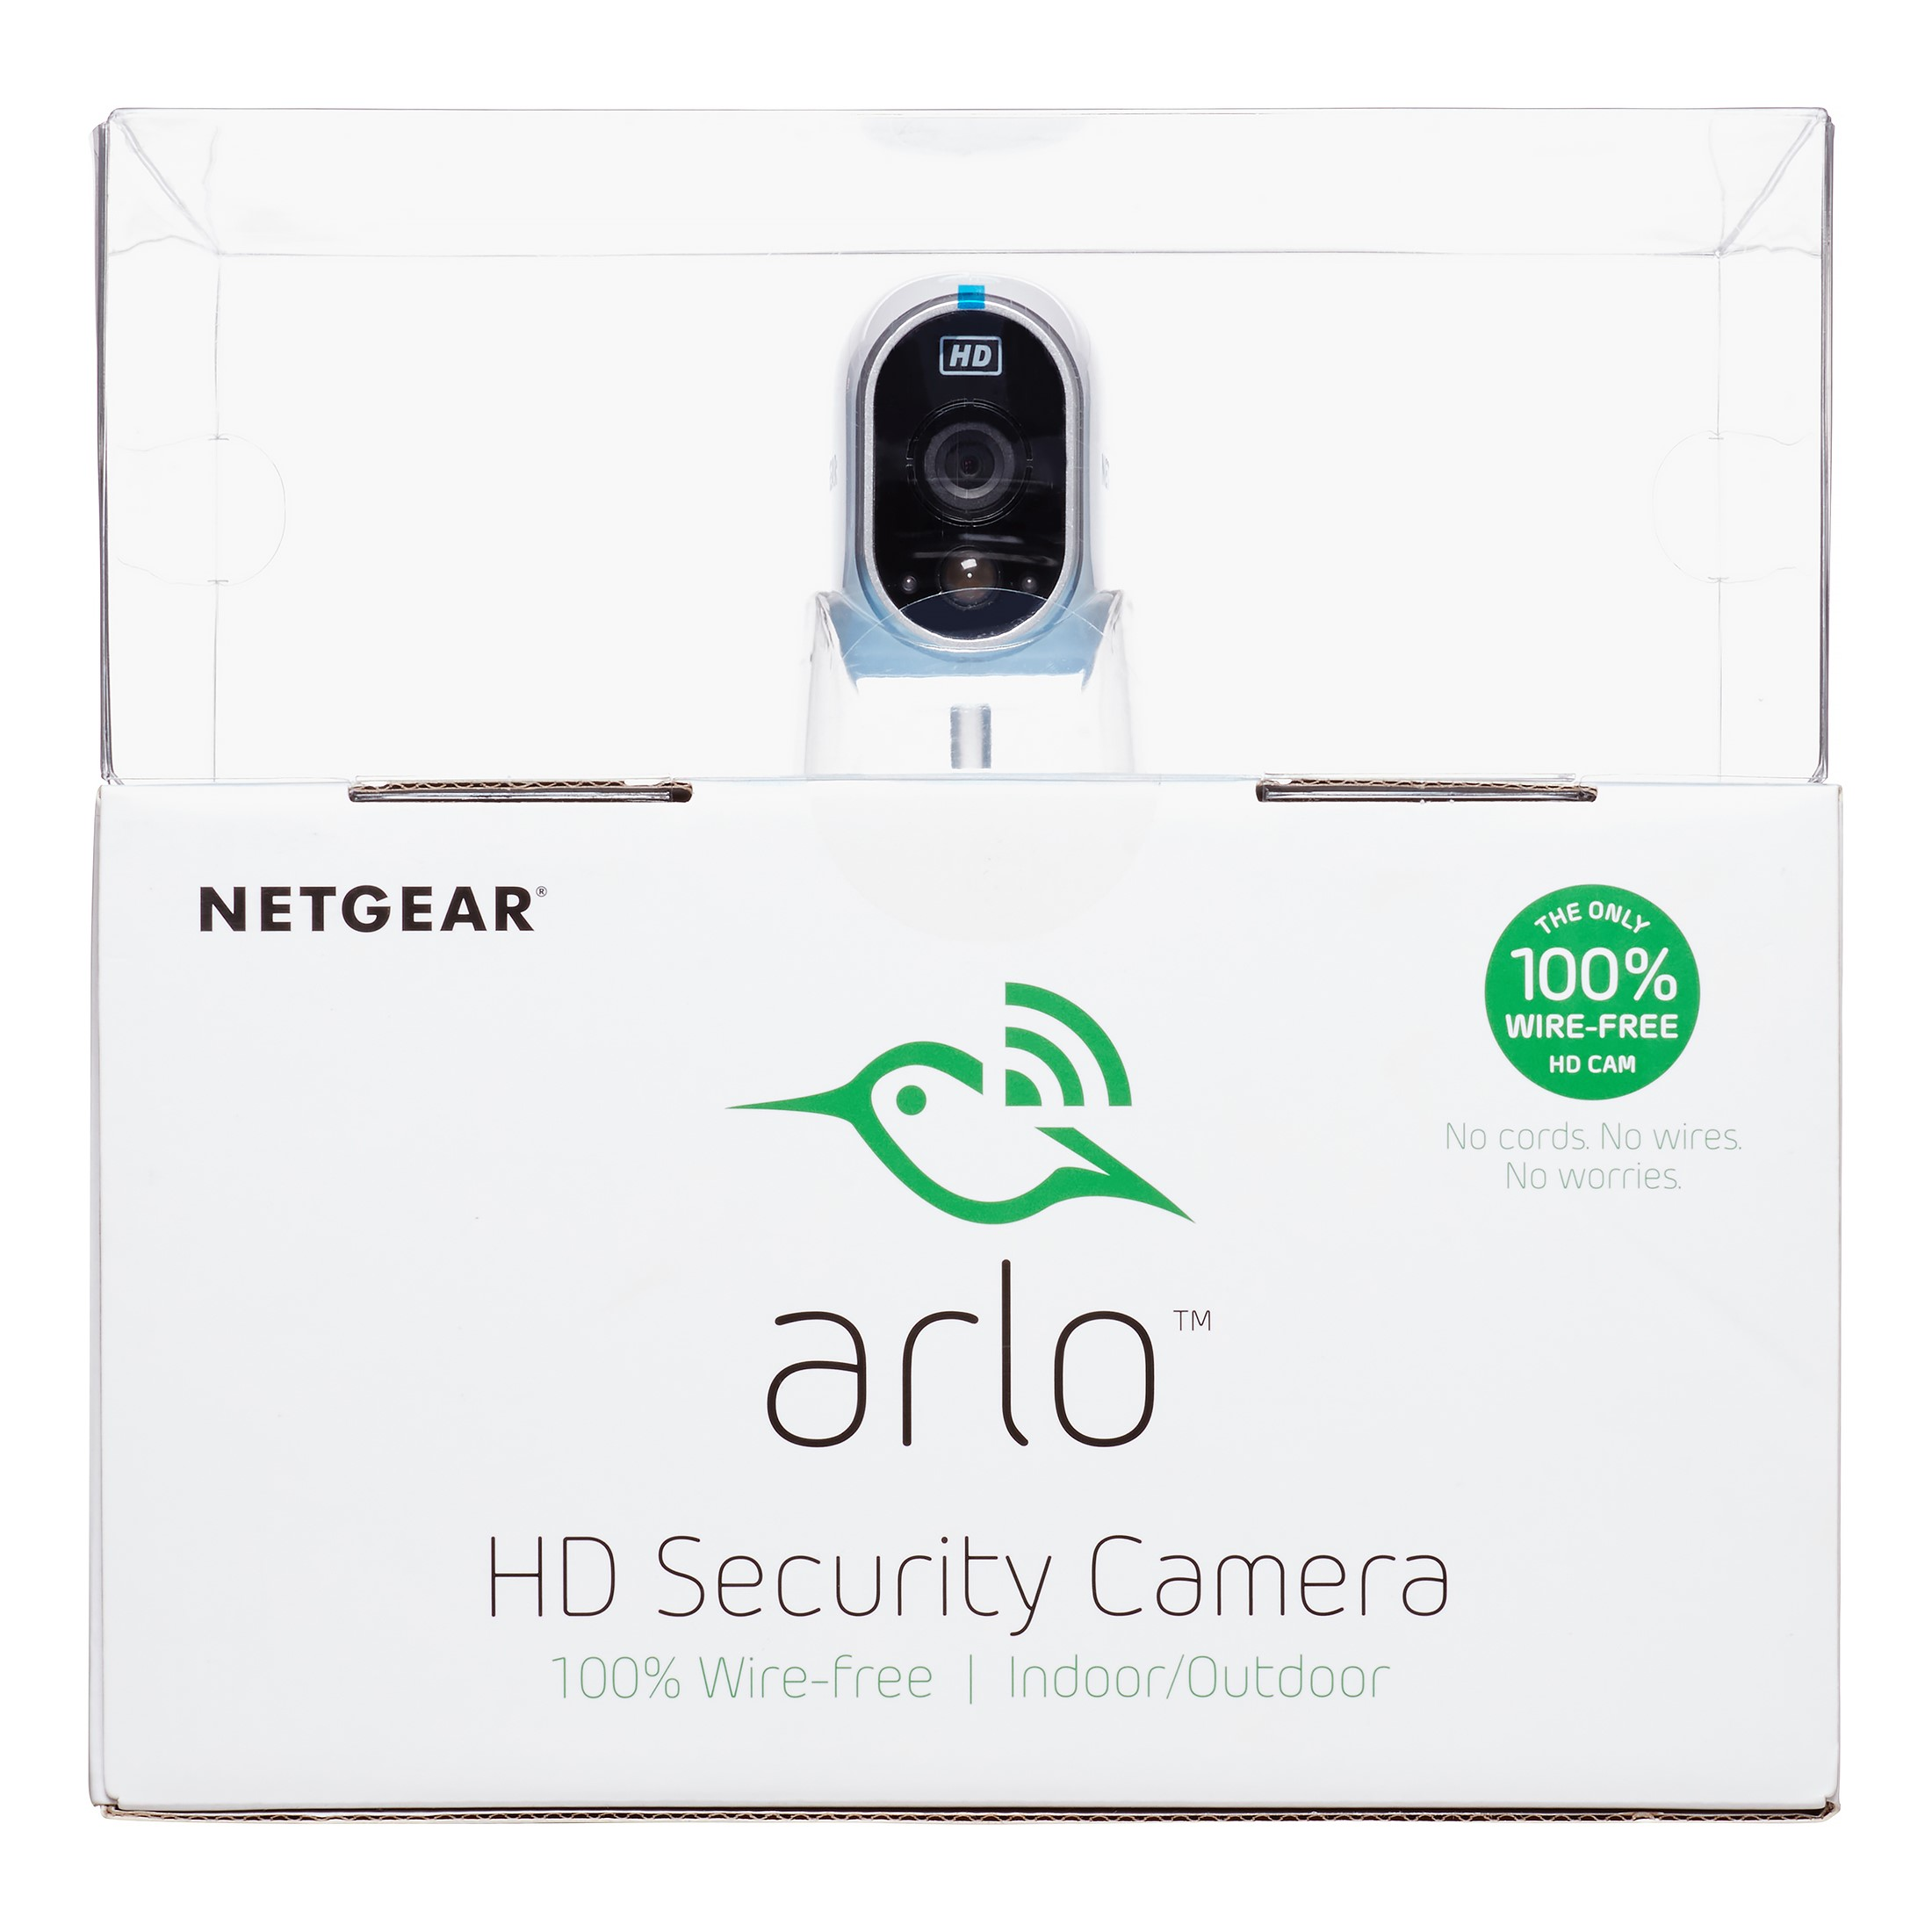 Arlo HD Security Camera 1 HD Camera Security System, 100% Wire-Free,  Indoor/Outdoor with Night Vision VMS3130-100NAS by NETGEAR - Walmart.com